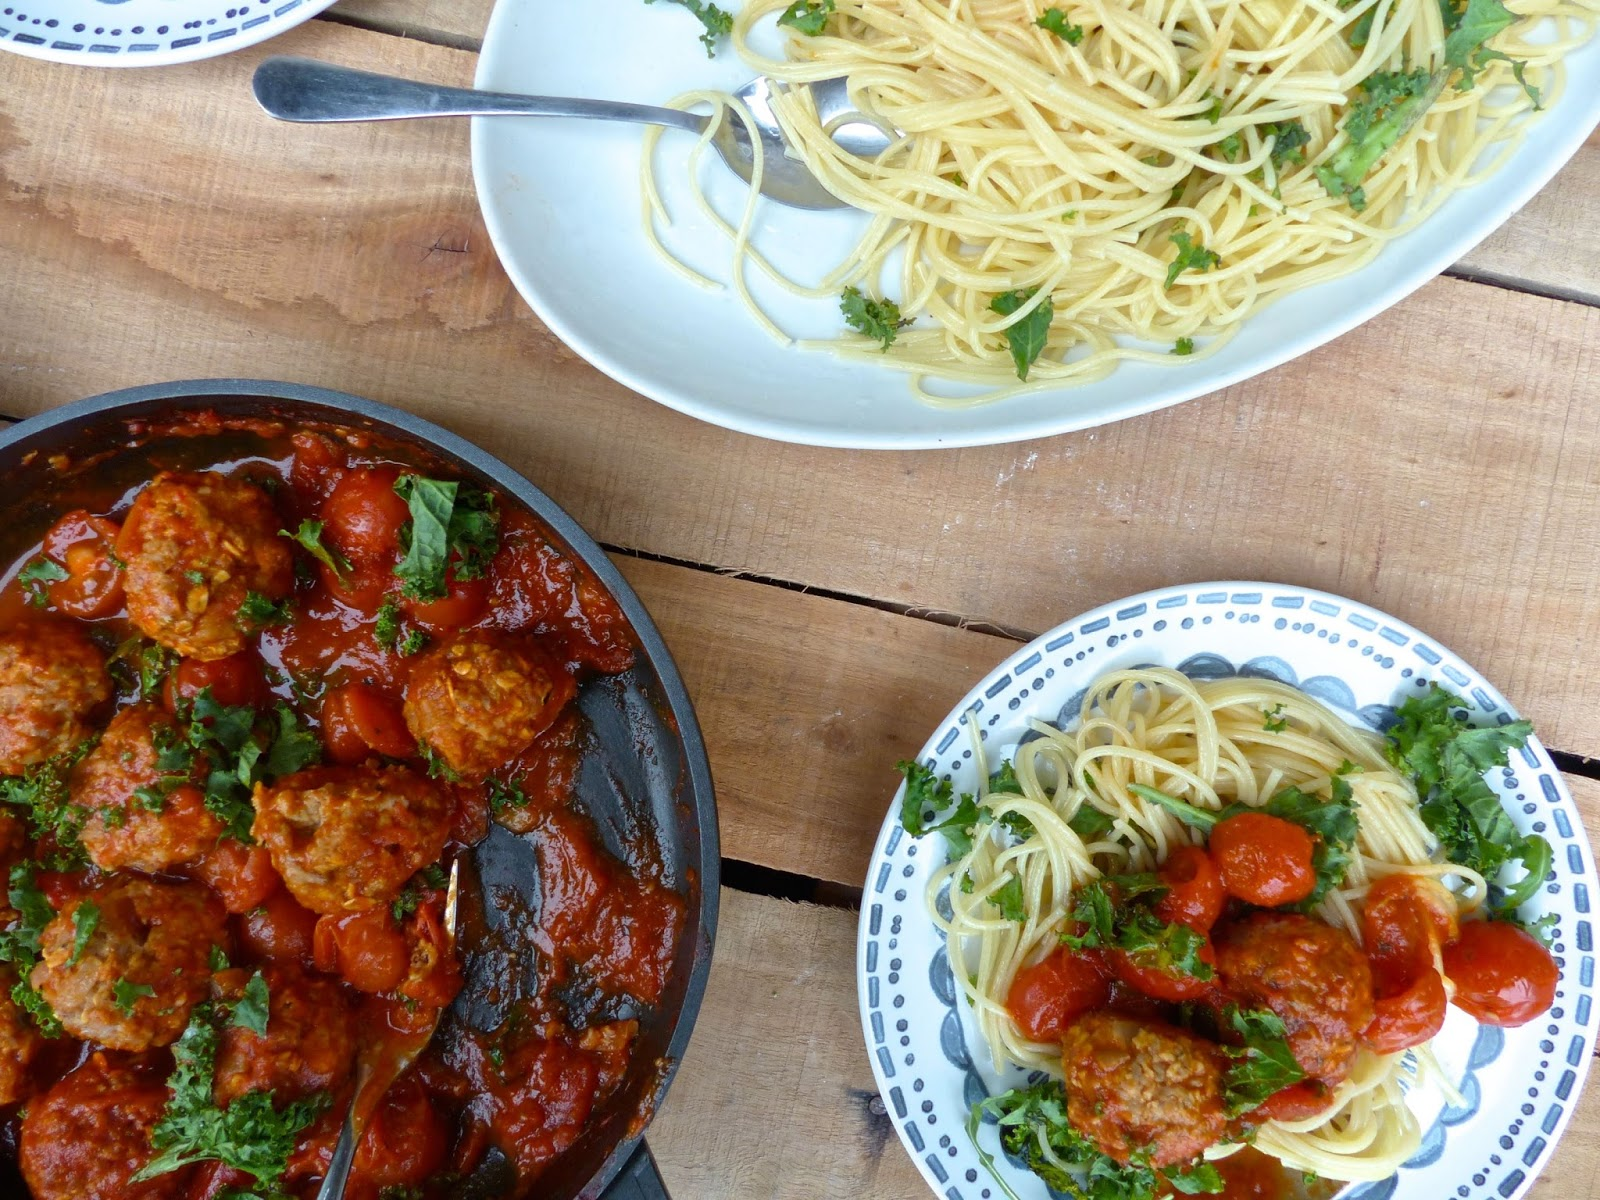 How To Make Spaghetti and Stoaty Oaty Meatballs